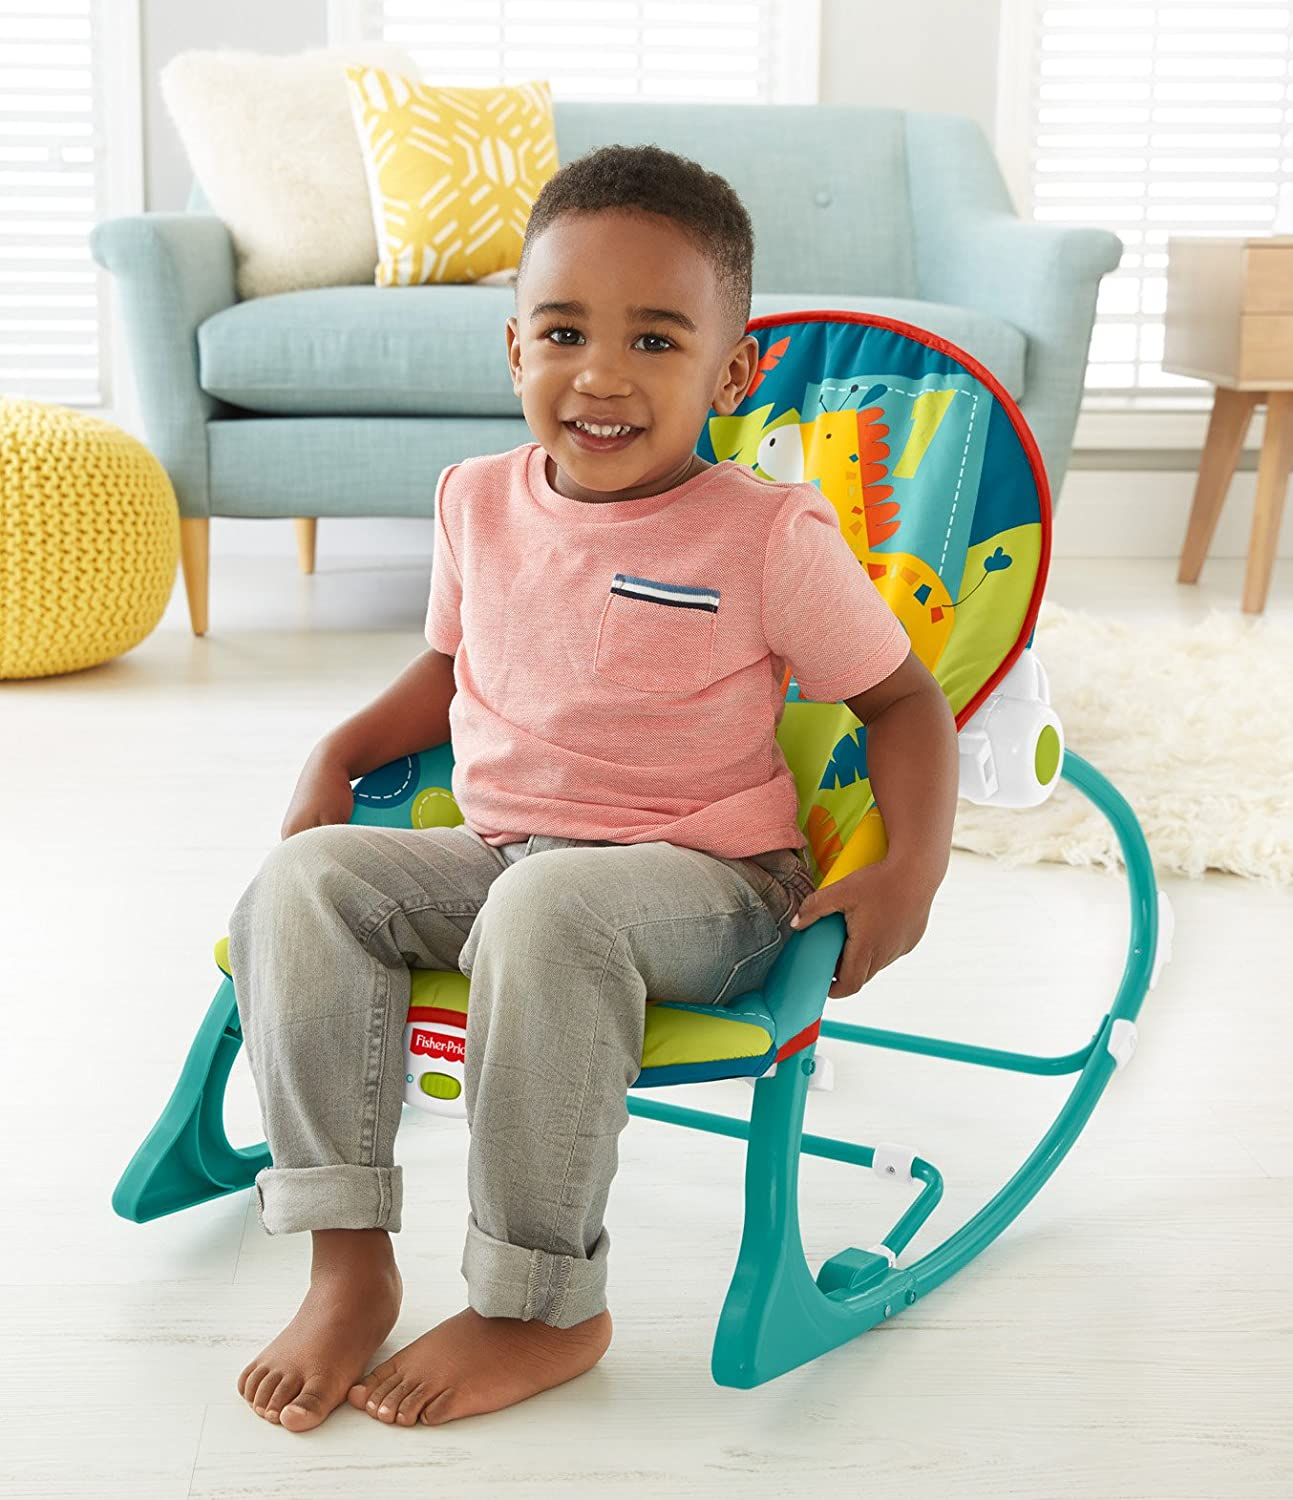 Bamboo chairs for babies - Amazon Com Fisher Price Infant To Toddler Rocker Dark Safari Infant Bouncers And Rockers Baby